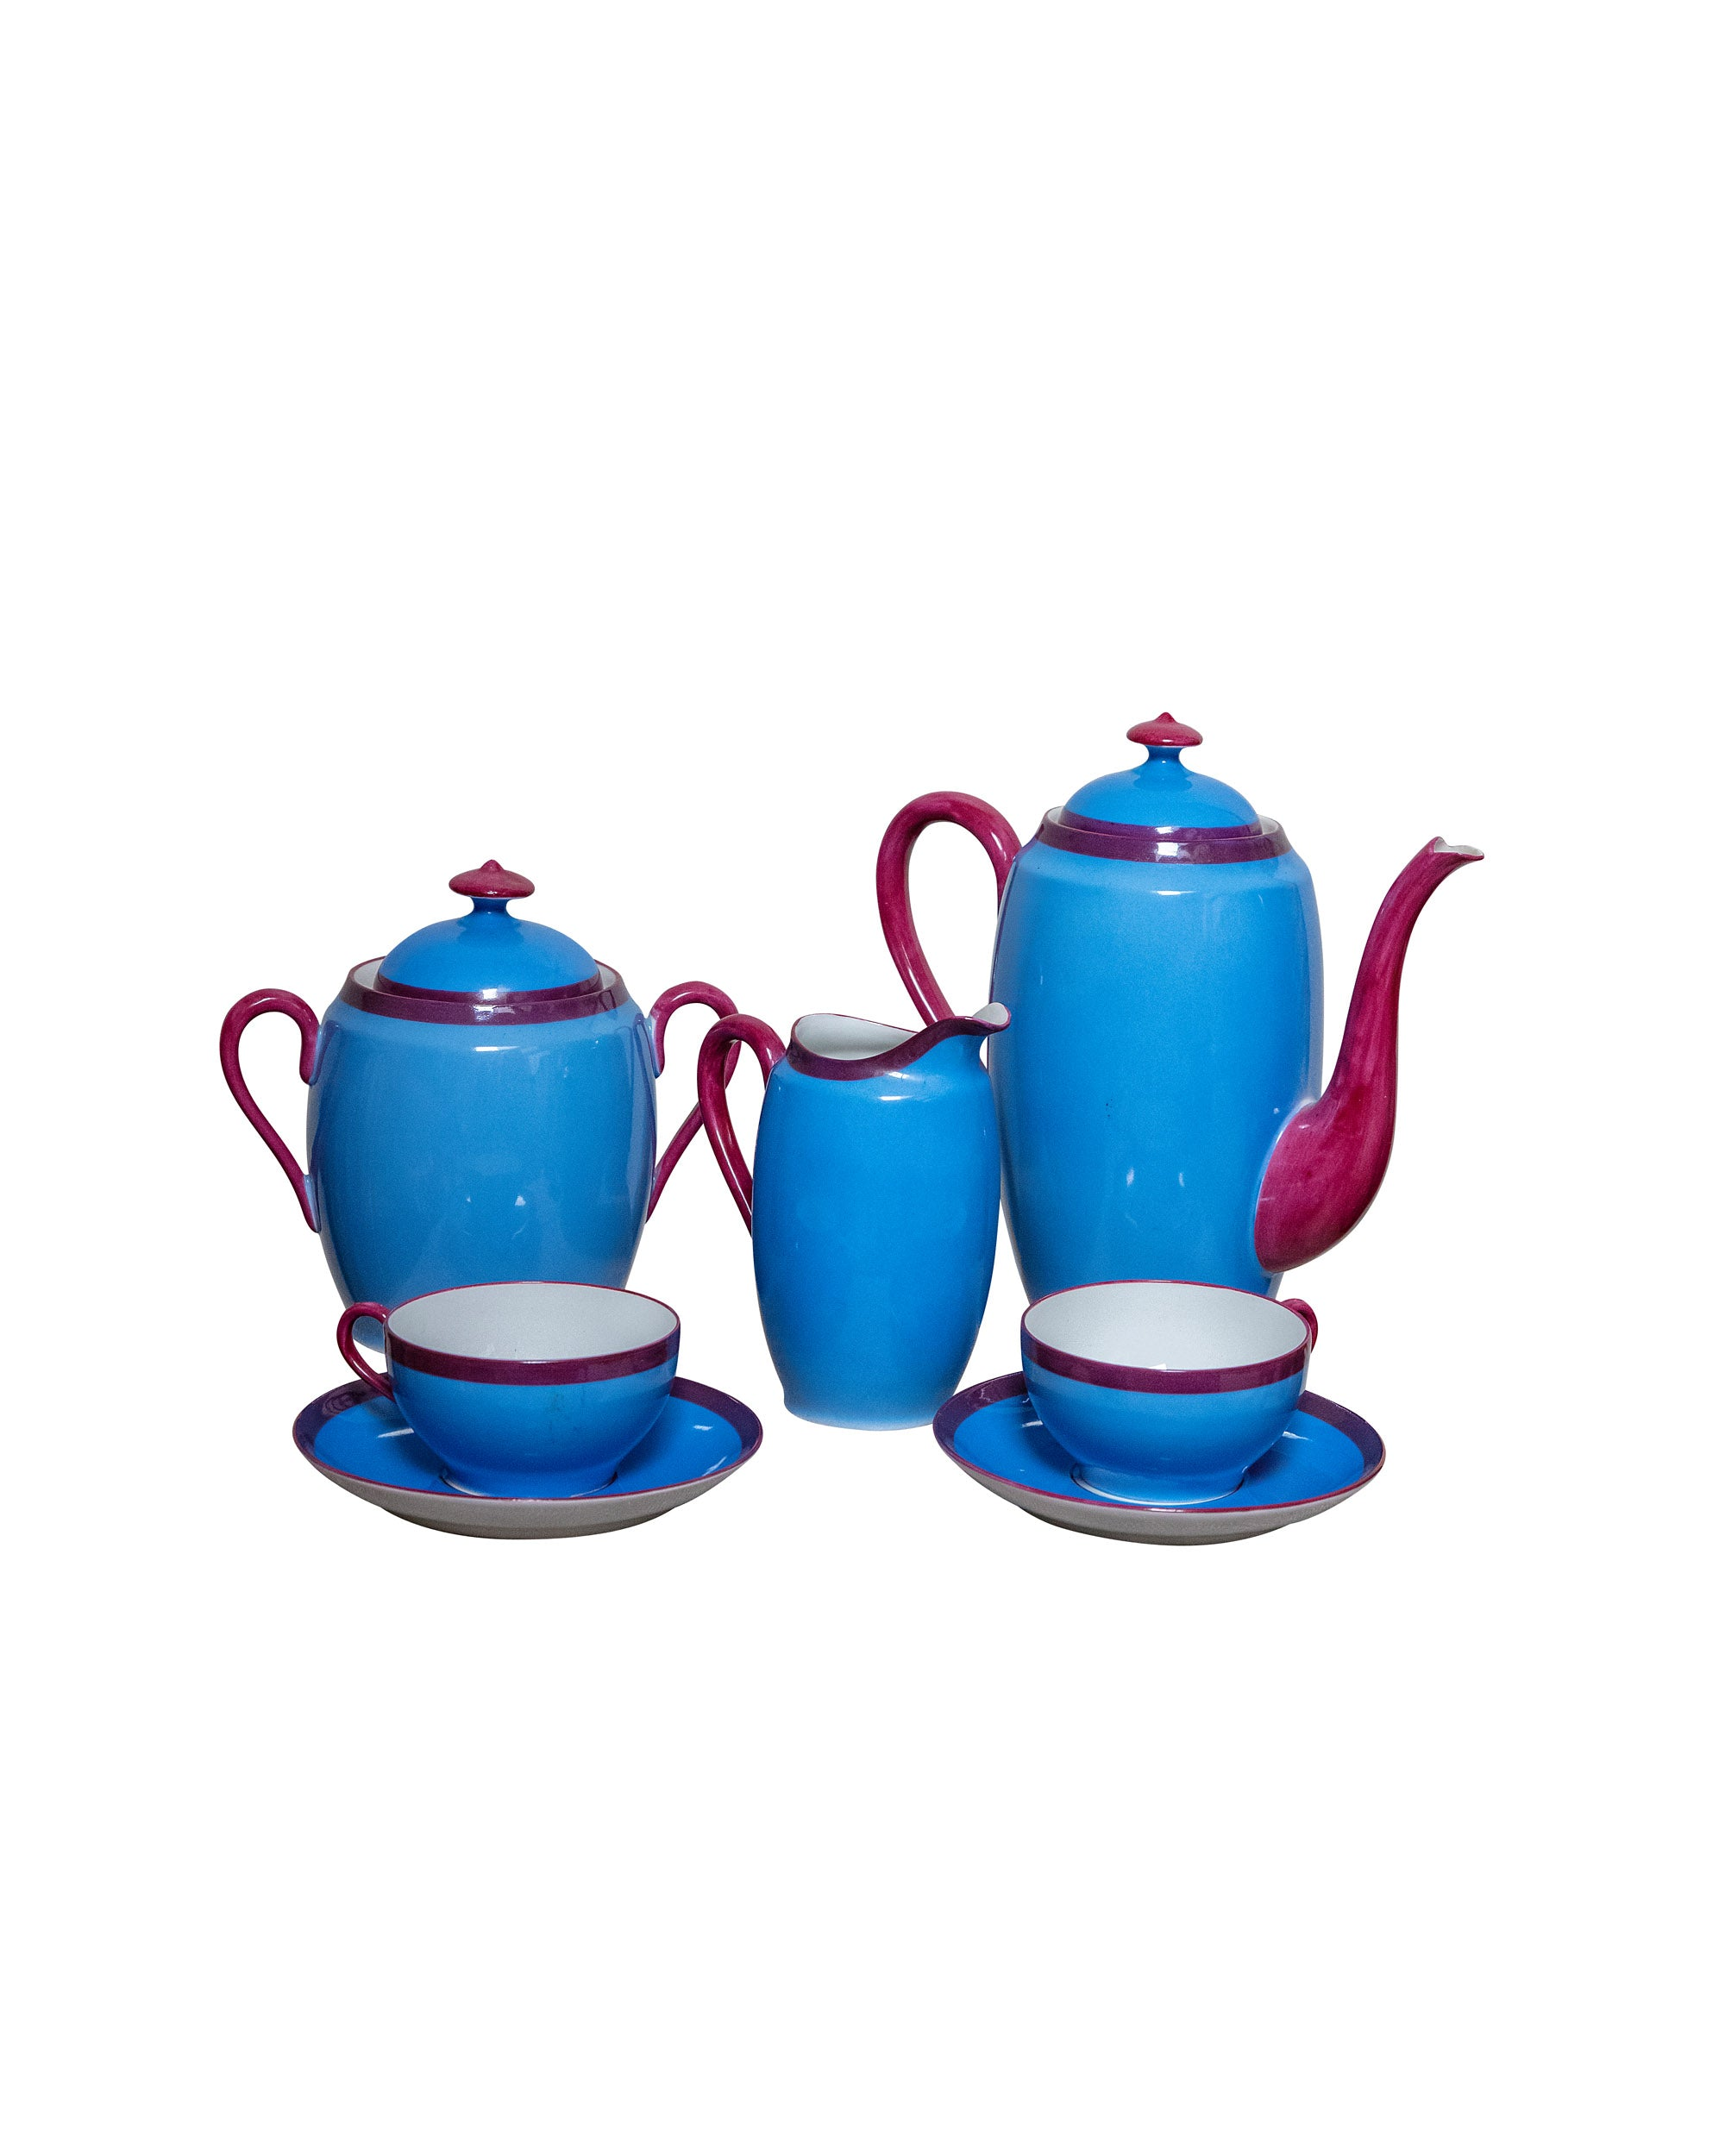 Blue Limoges coffee set with burgundy rim